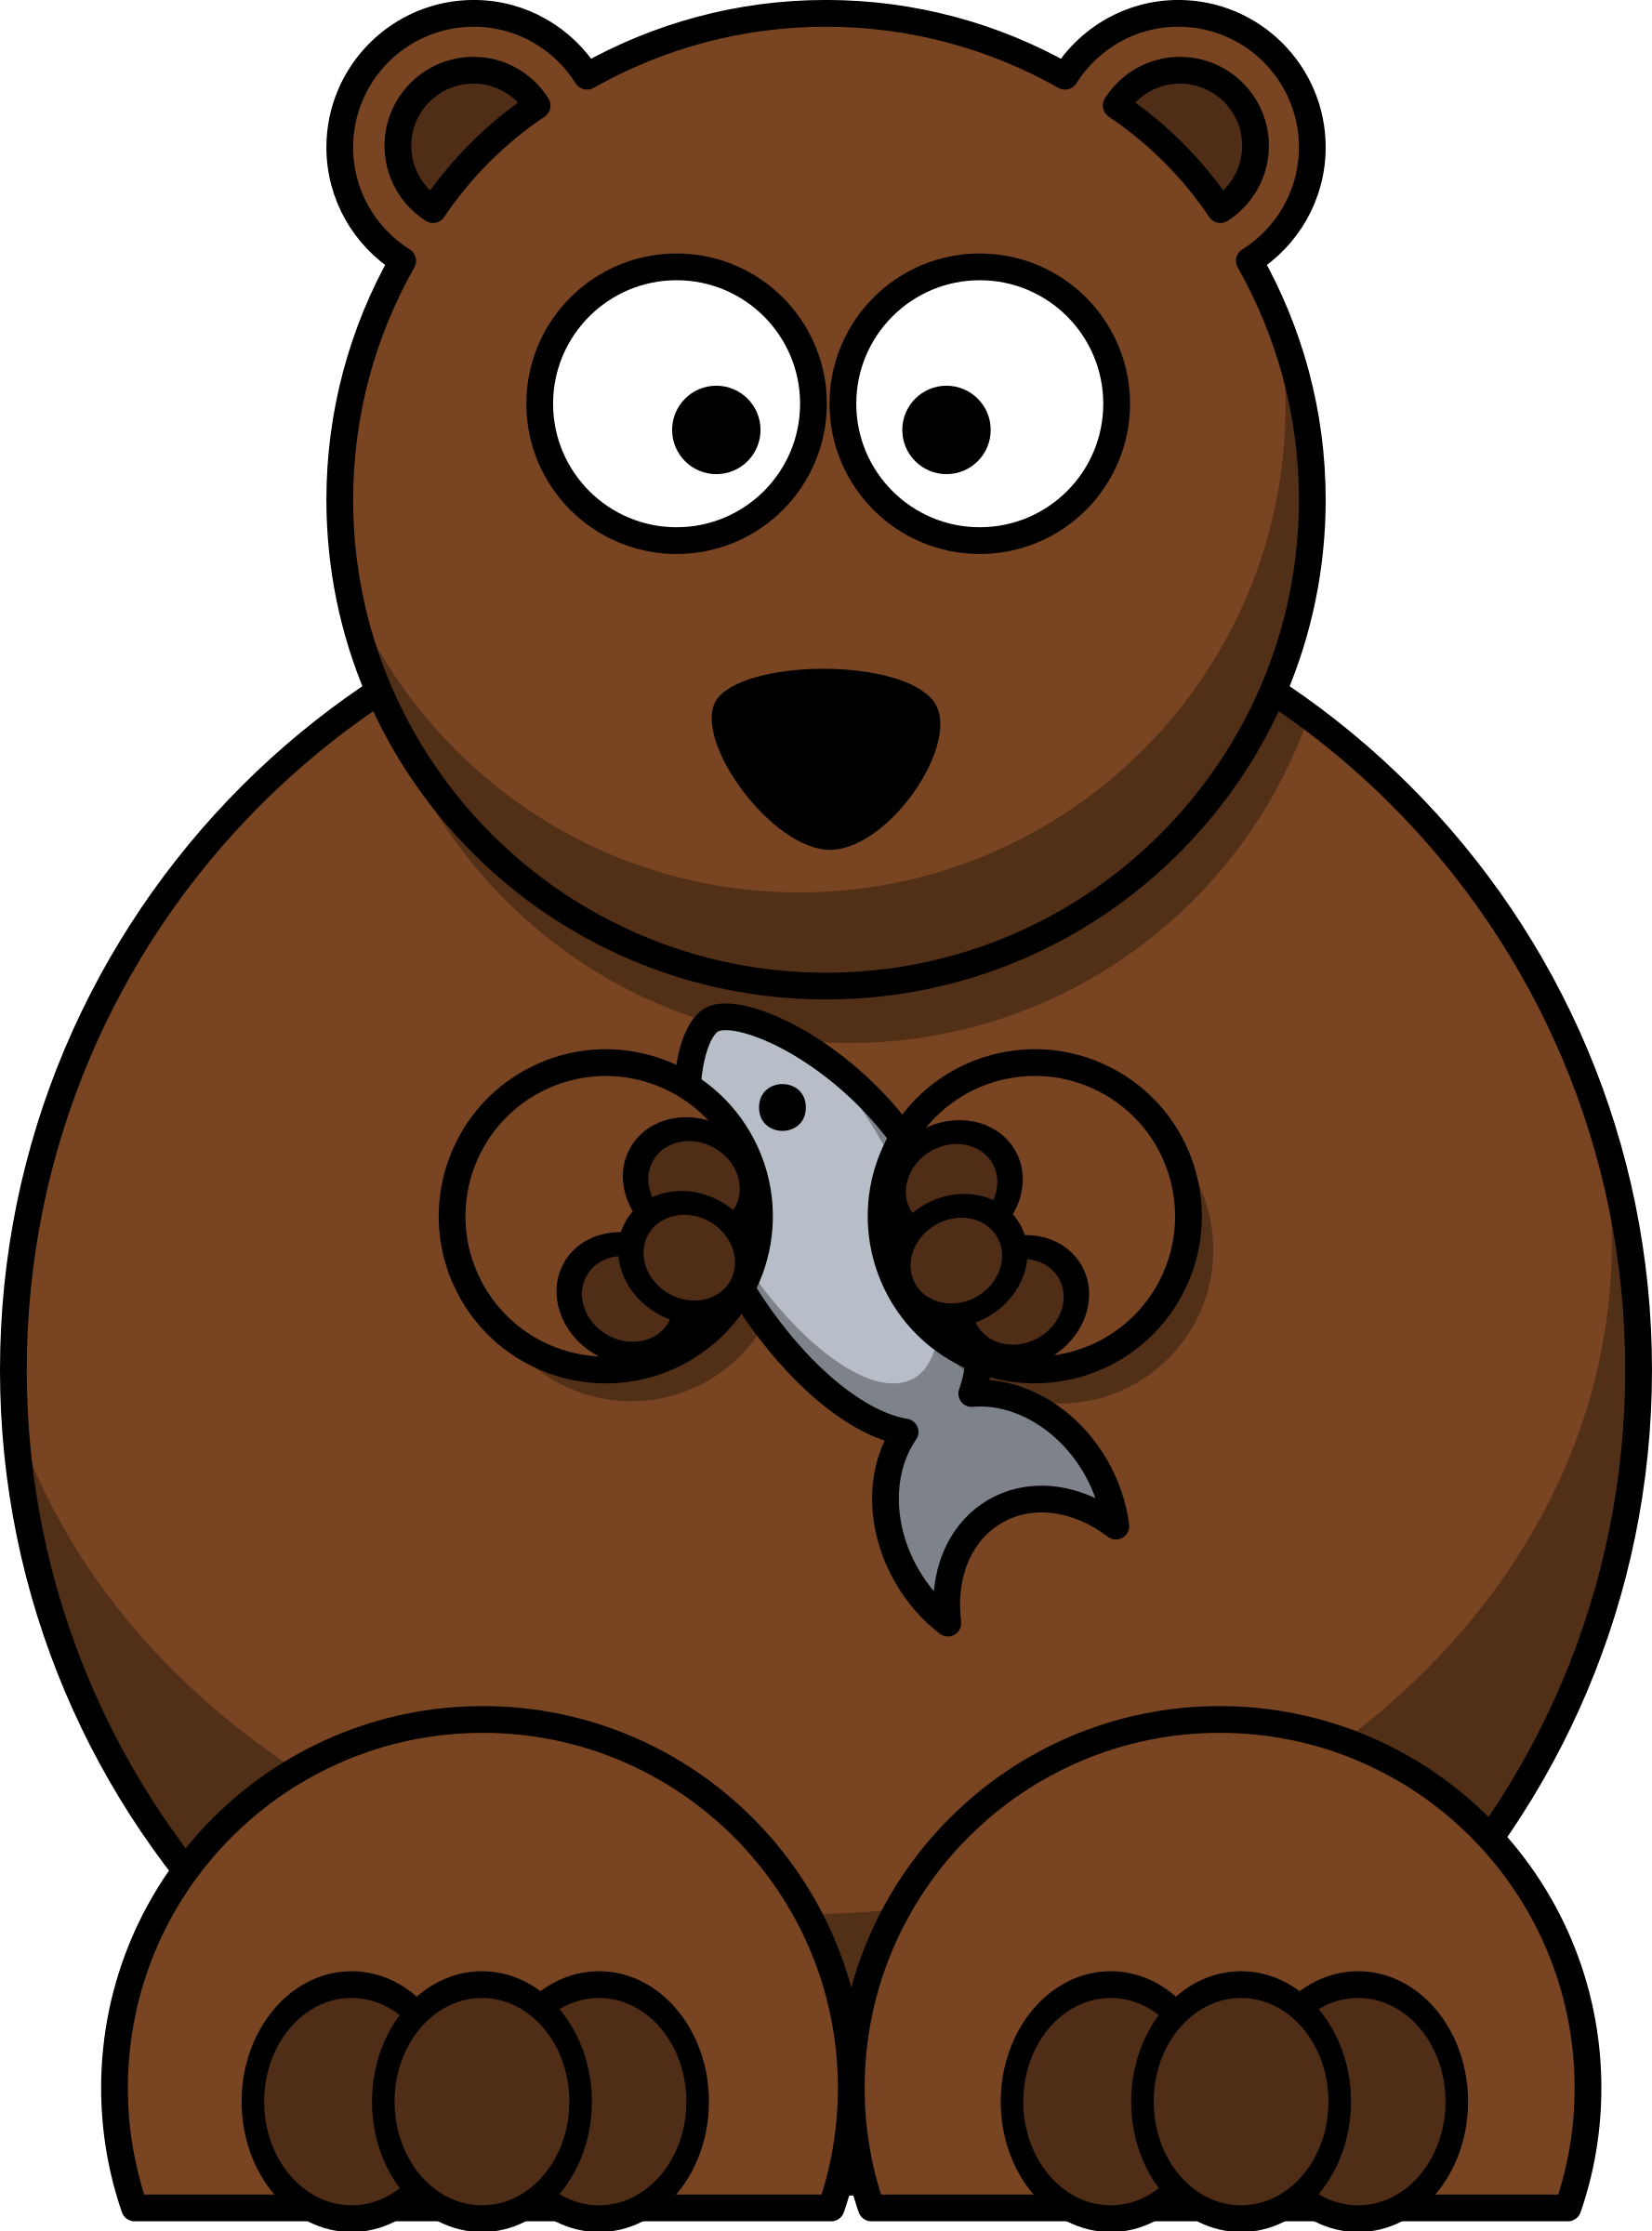 Cartoon bear by lemmling